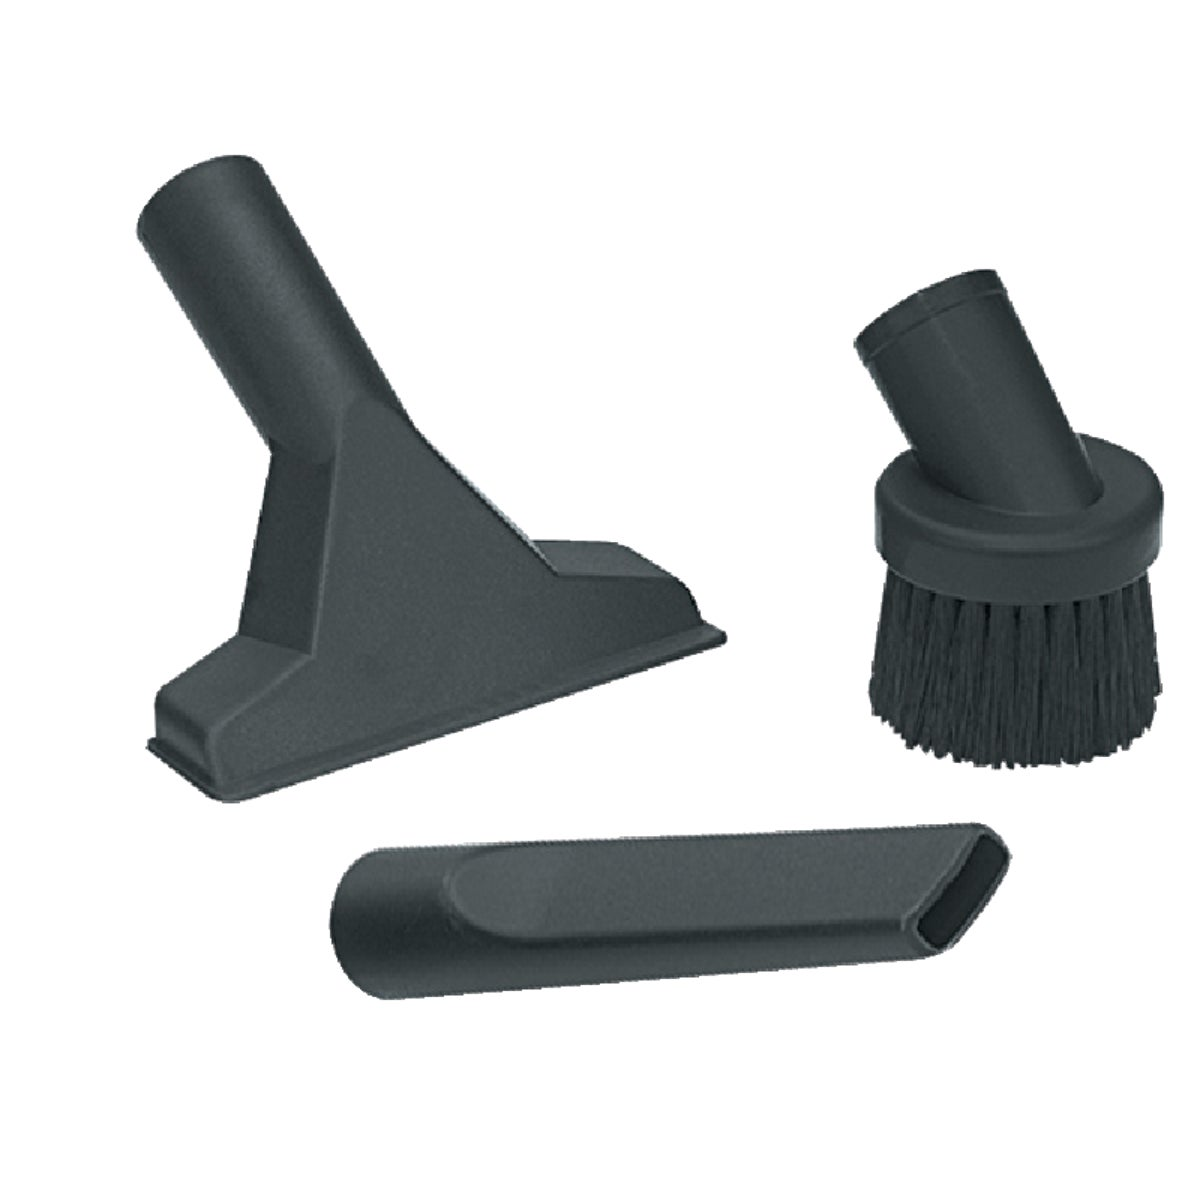 3PC VAC ACCESSORY KIT - 9064300 by Shop Vac Corp